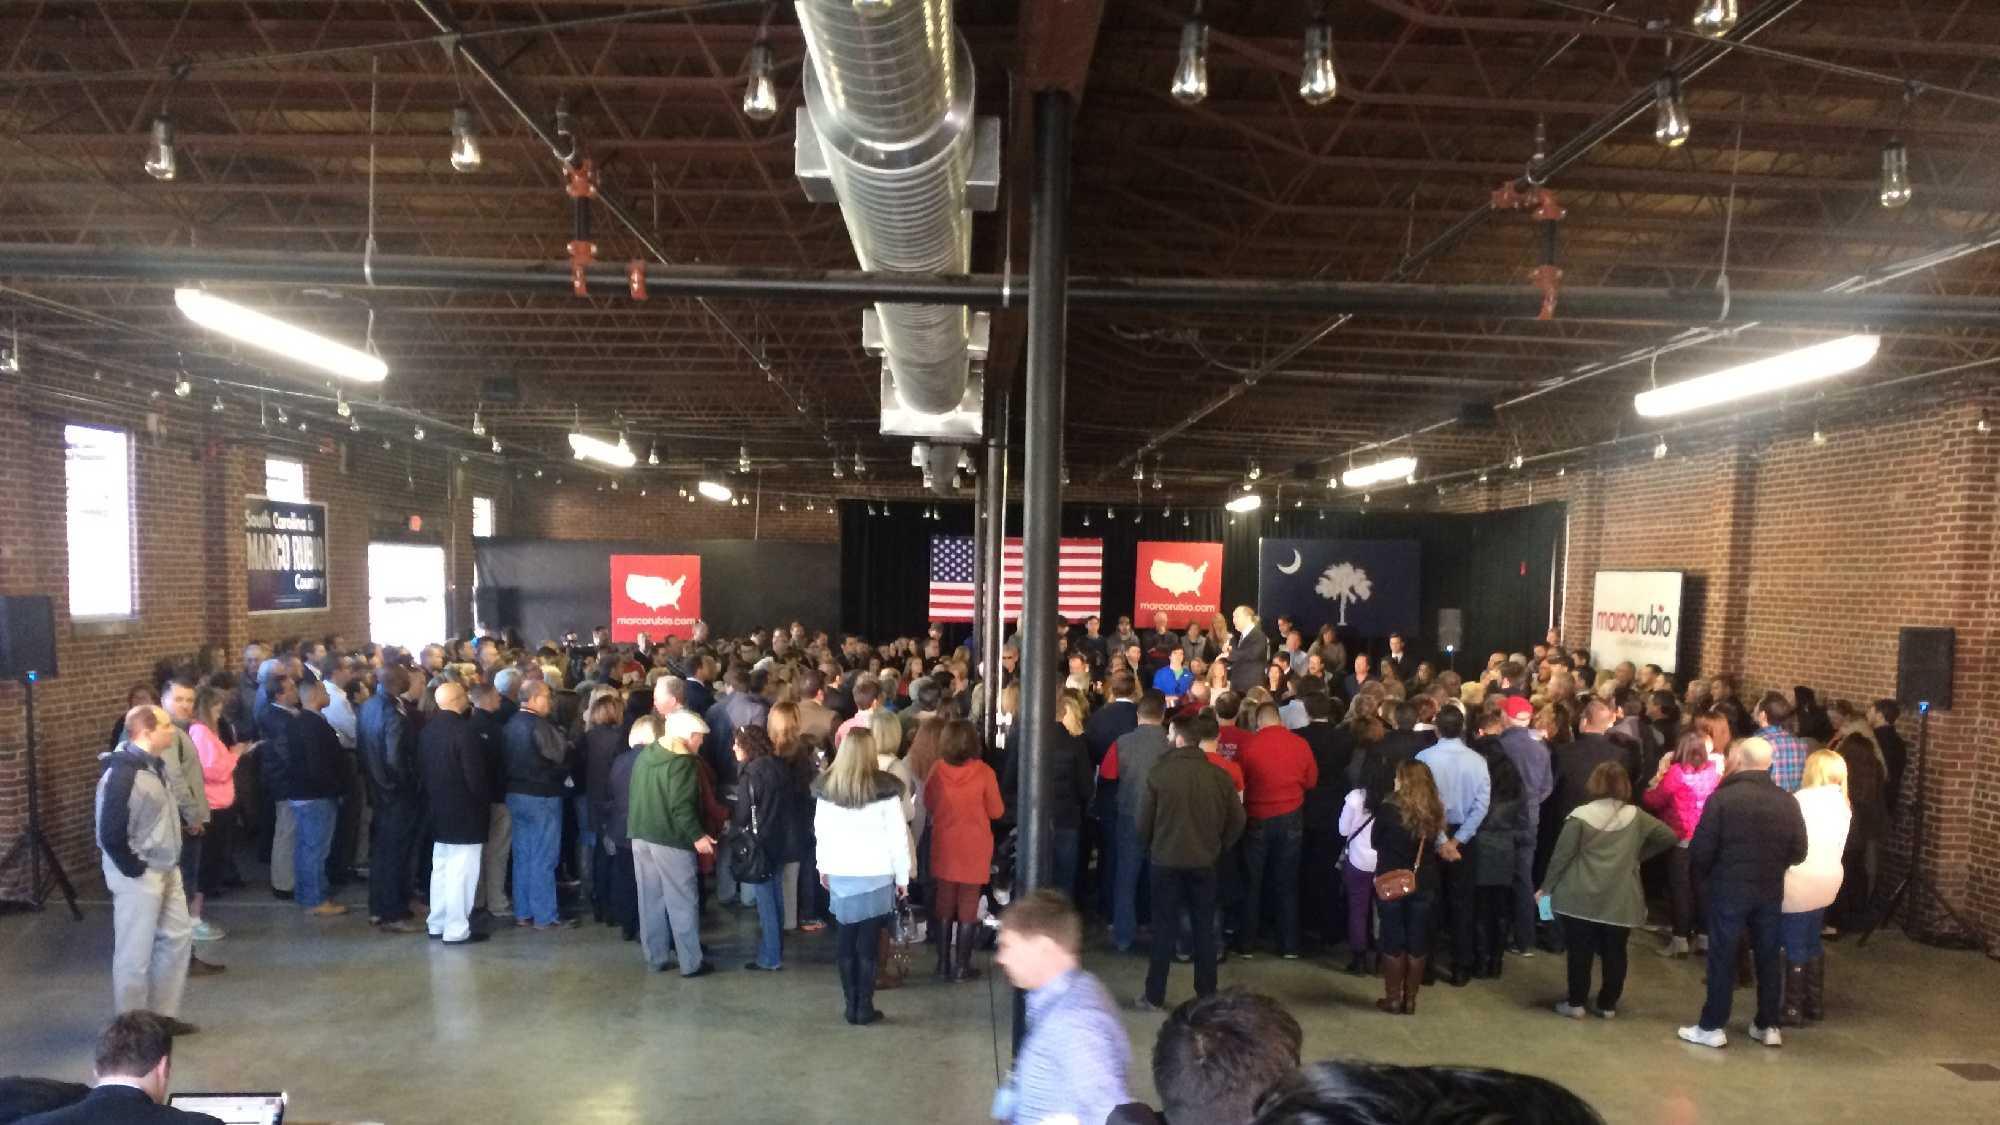 Marco Rubio speaking at Swamp Rabbit Crossfit in Greenville on Thursday.